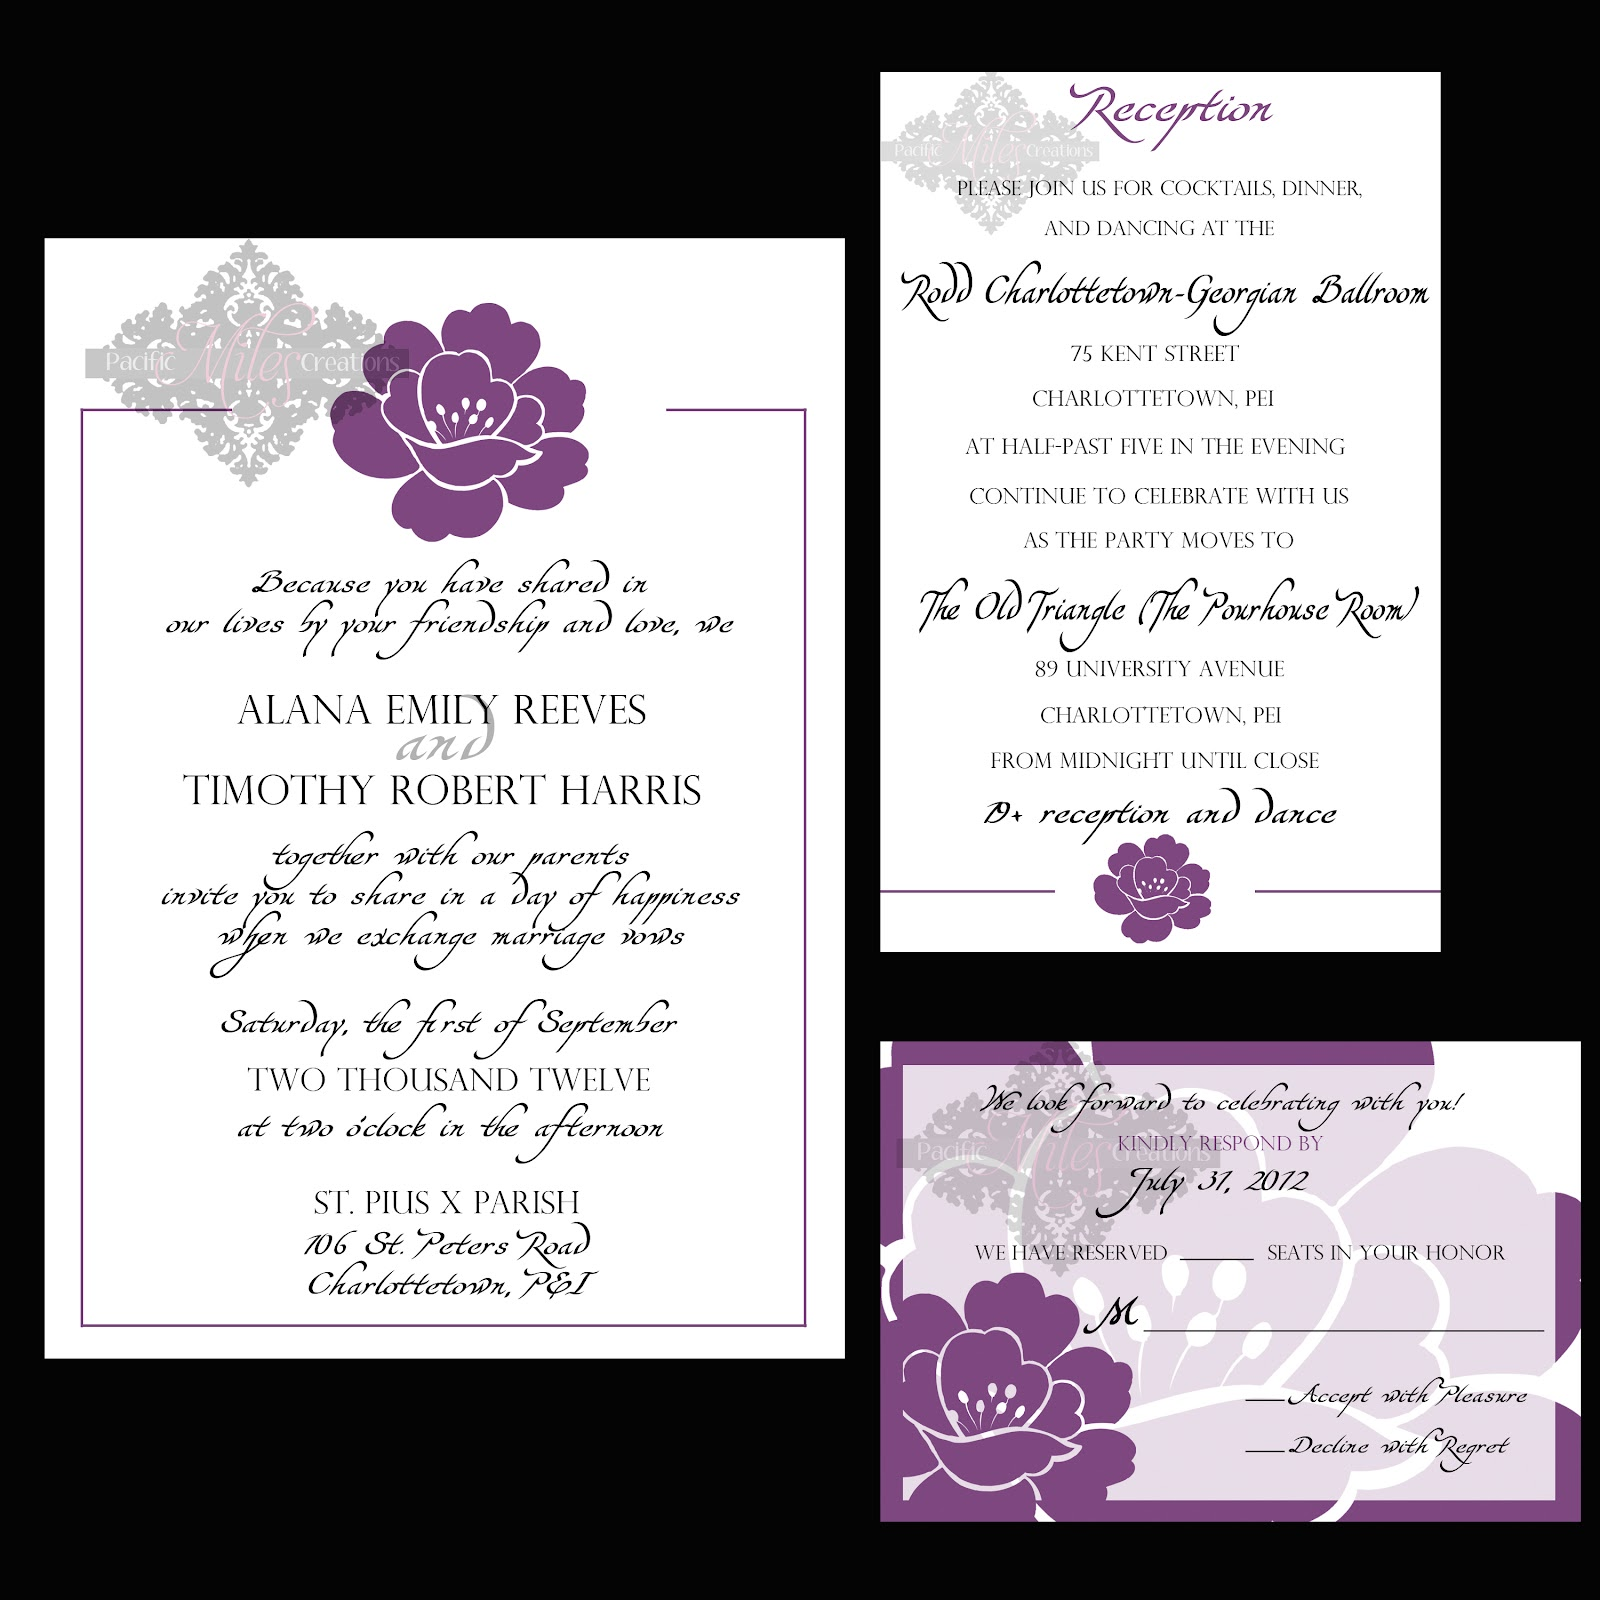 Formal Invitations lacienciadelpanicotk